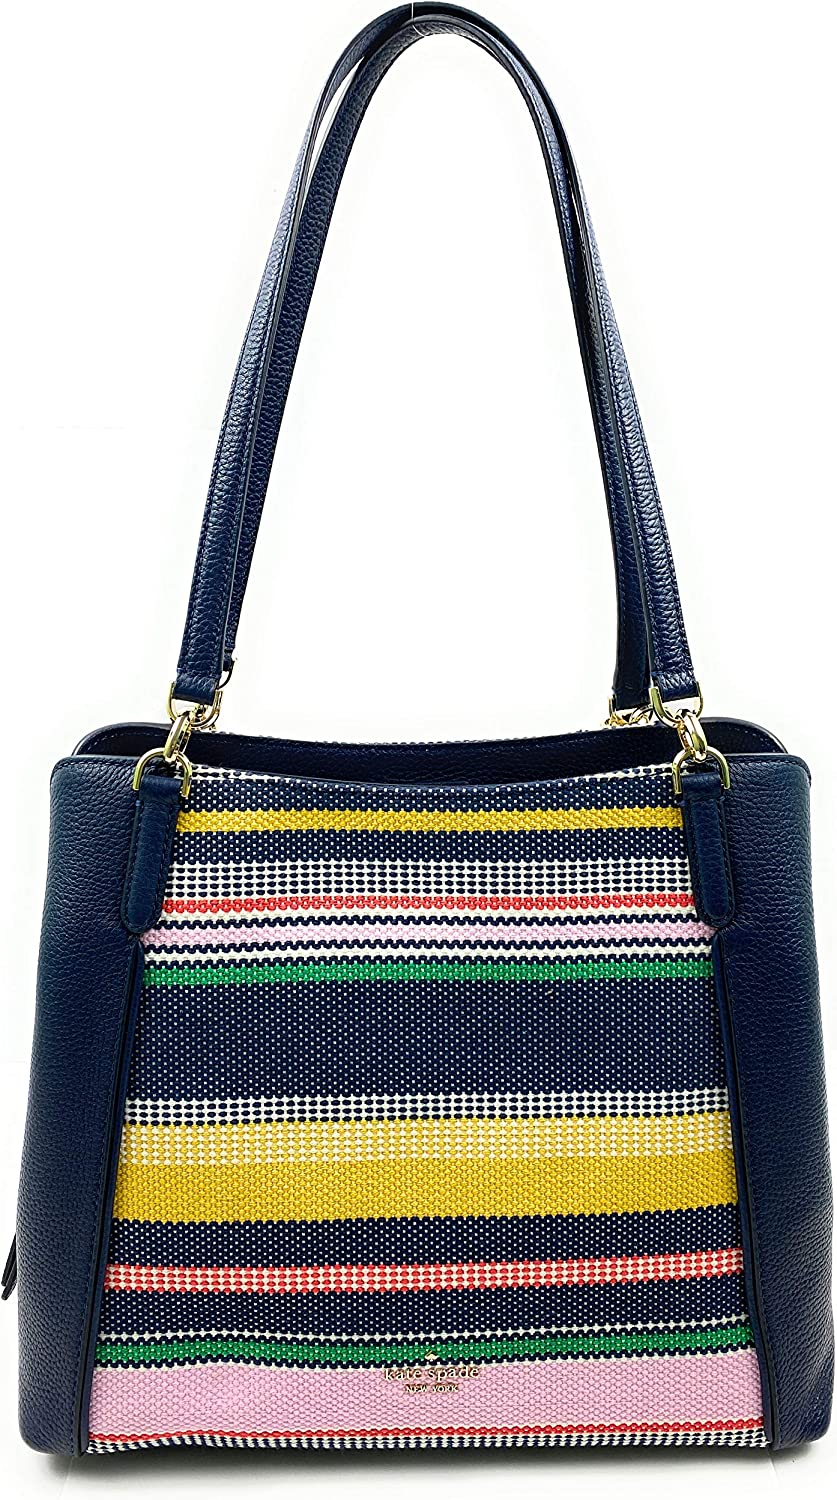 Kate Spade Purse Jackson Medium Triple Compartment Shoulder Bag (Boardwalk stripe multi)